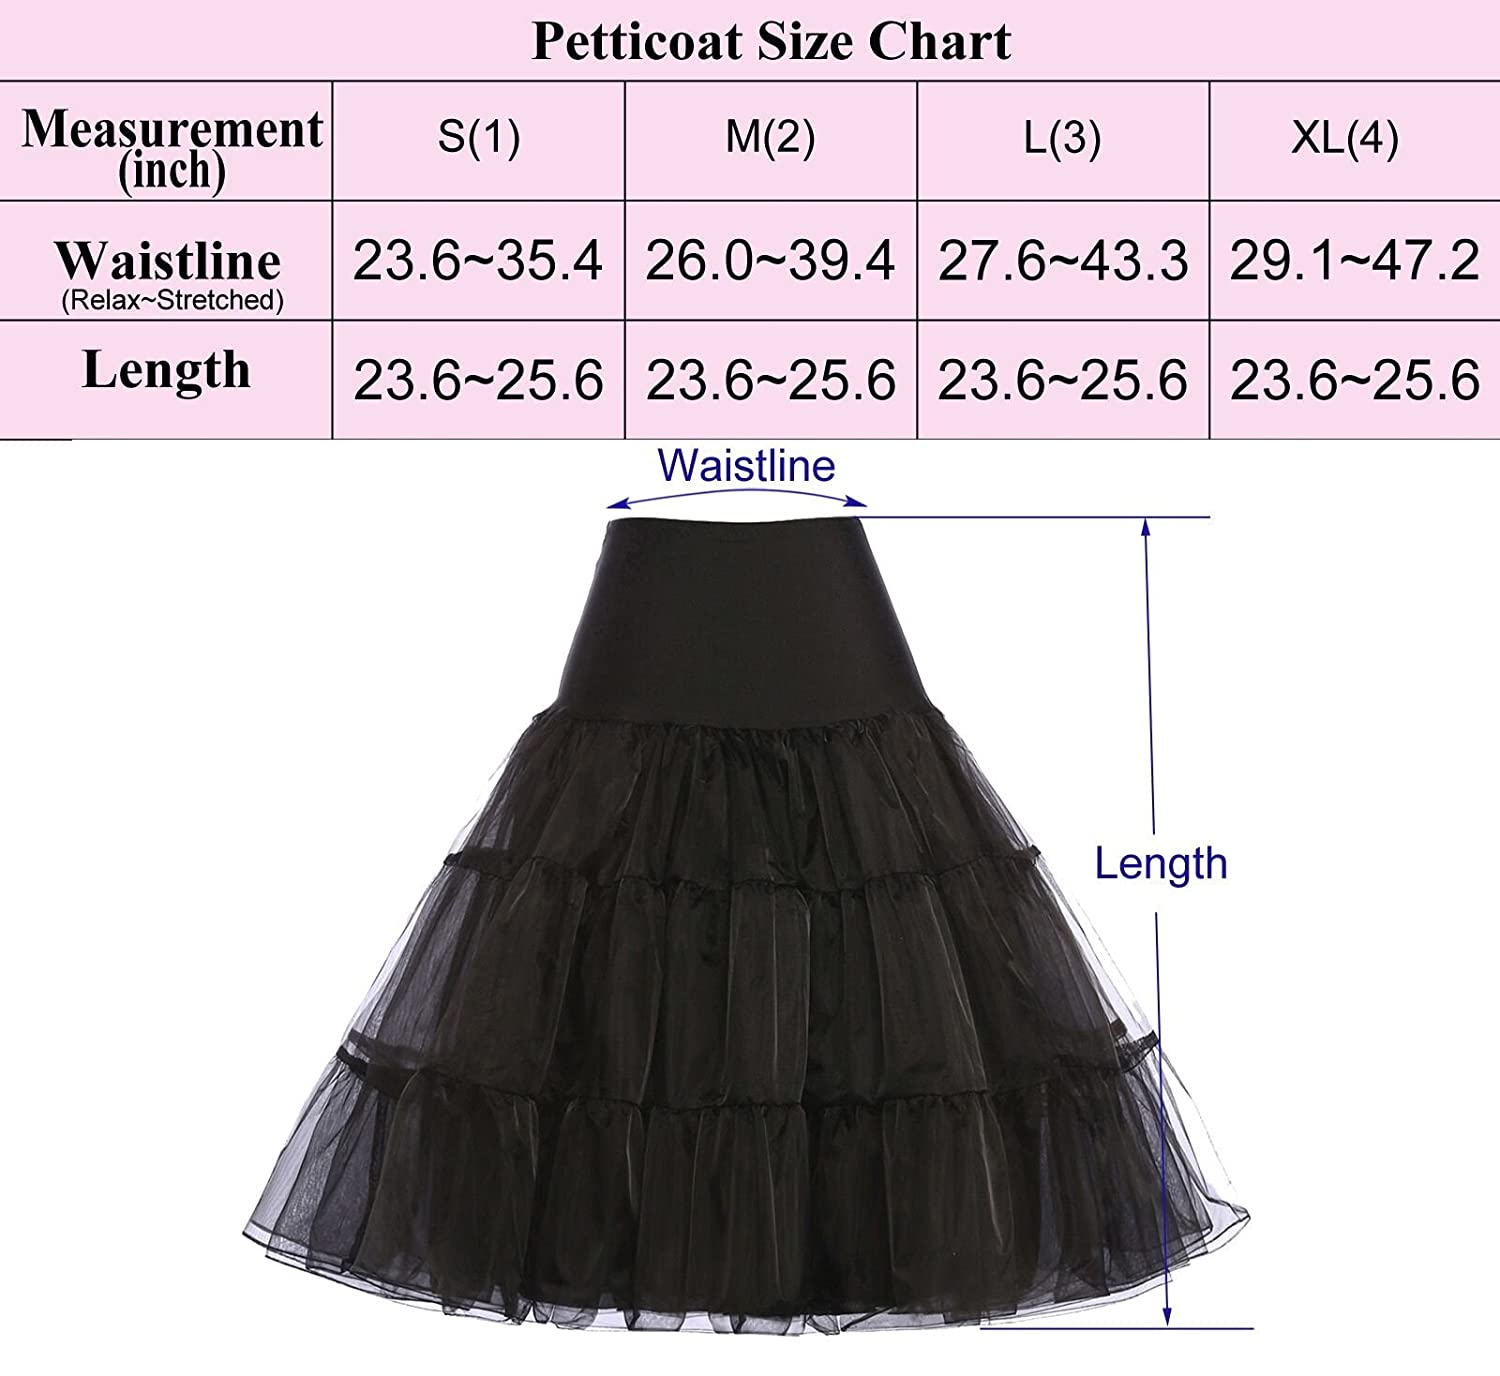 Wedding Plus Size Petticoat grace karin women 50s petticoat skirts tutu crinoline underskirt cl8922 at amazon womens clothing store